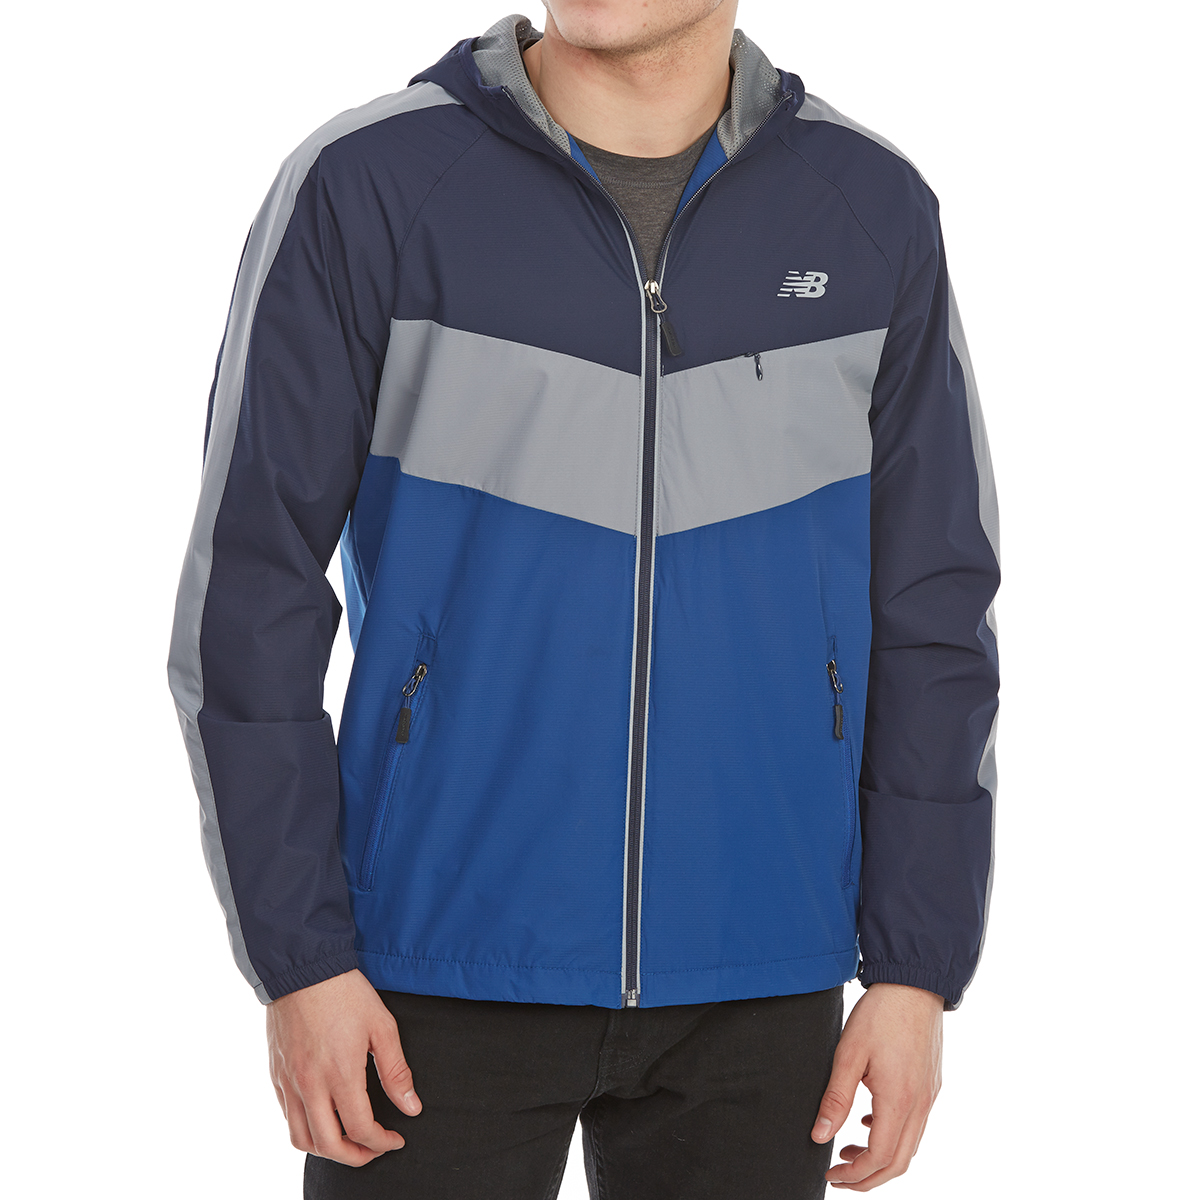 New Balance Men's Poly Dobby Color-Block Jacket - Blue, L